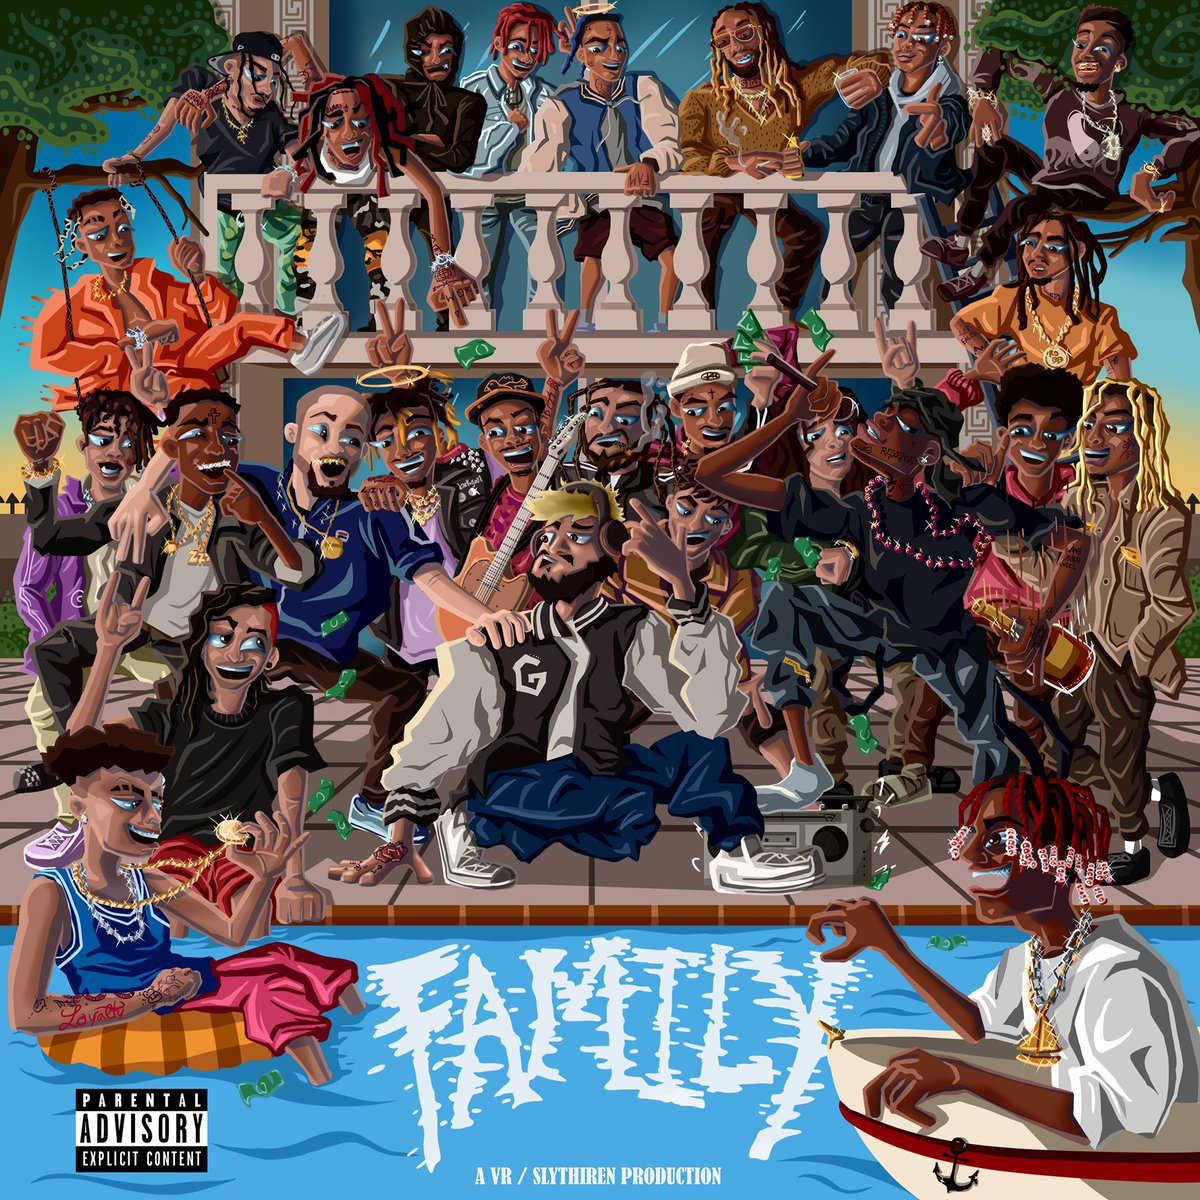 FAMILY DECEMBER 4th 12 days. Reply w what ur most excited for!!!